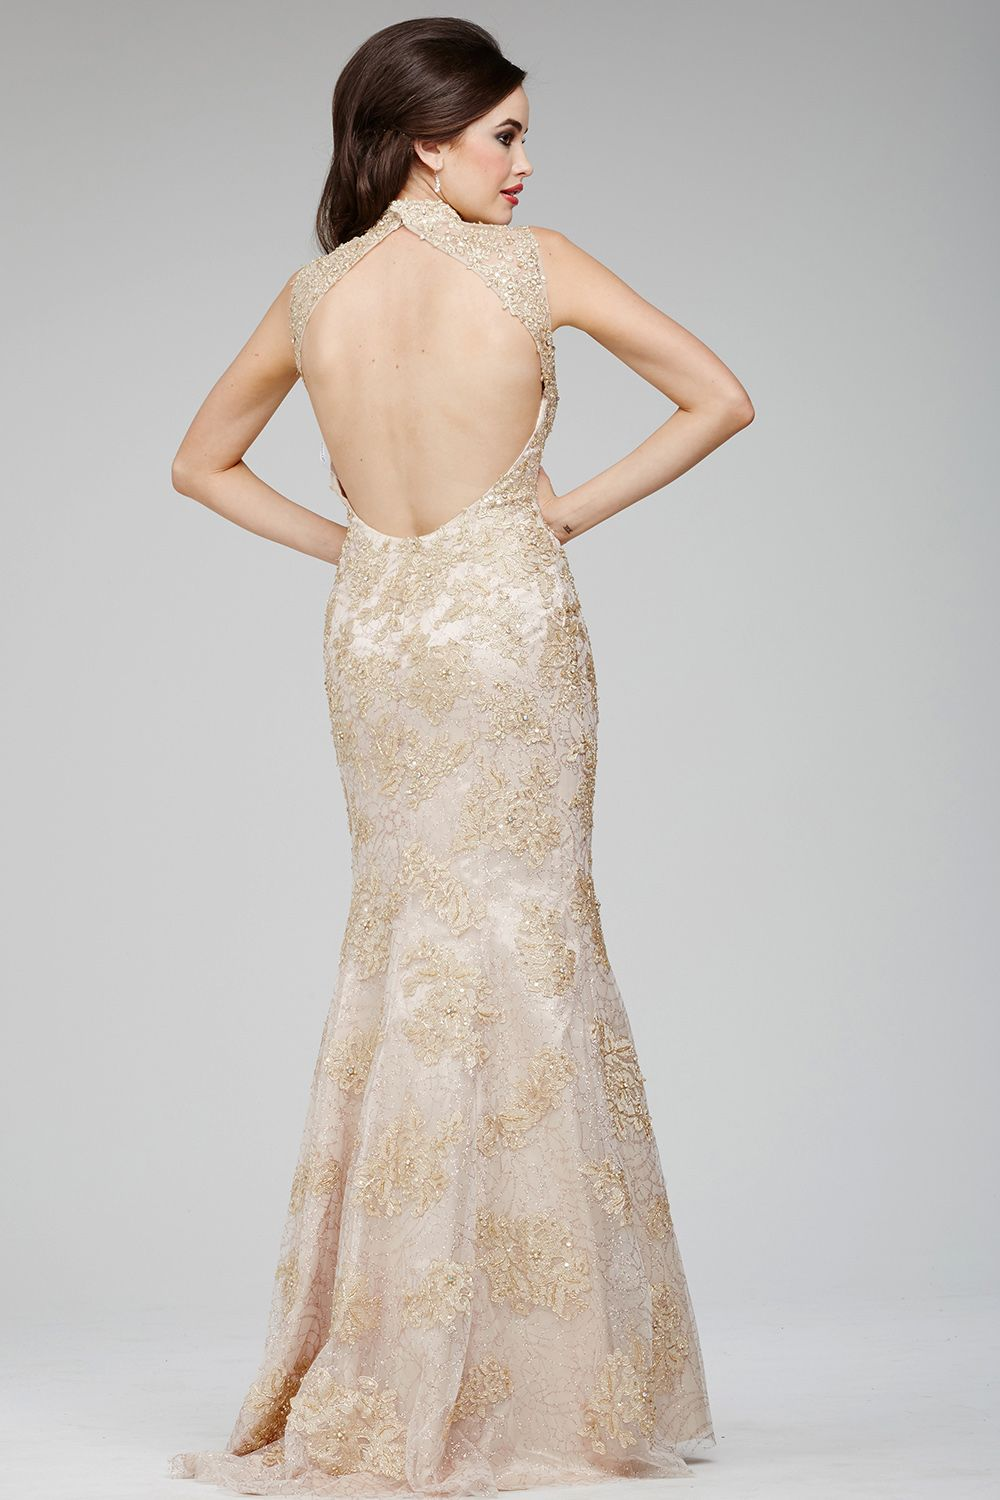 Lace assumes high class elegance in the exquisite jovani